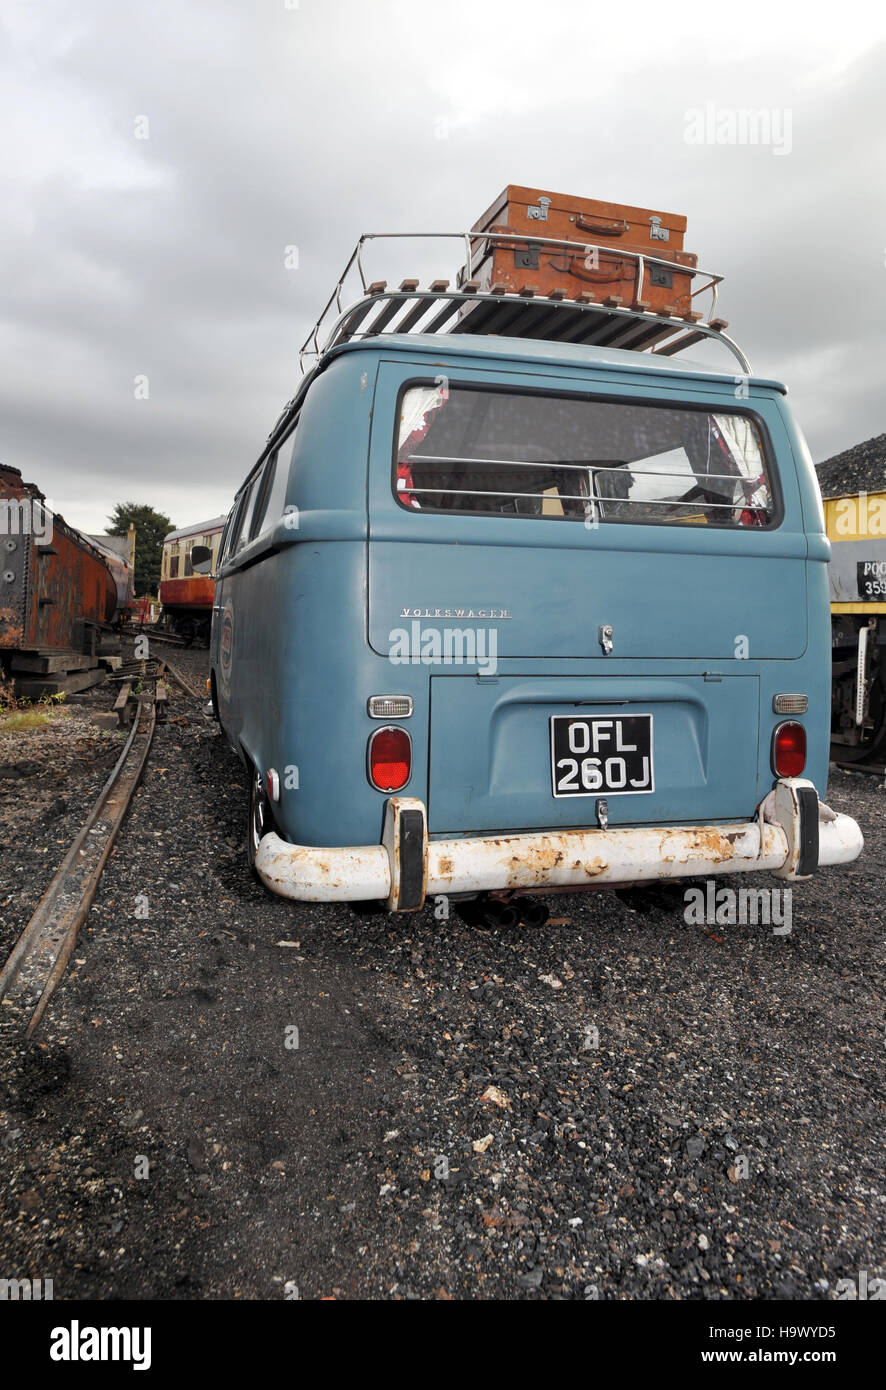 1971 Volkswagen Bus High Resolution Stock Photography And Images Alamy